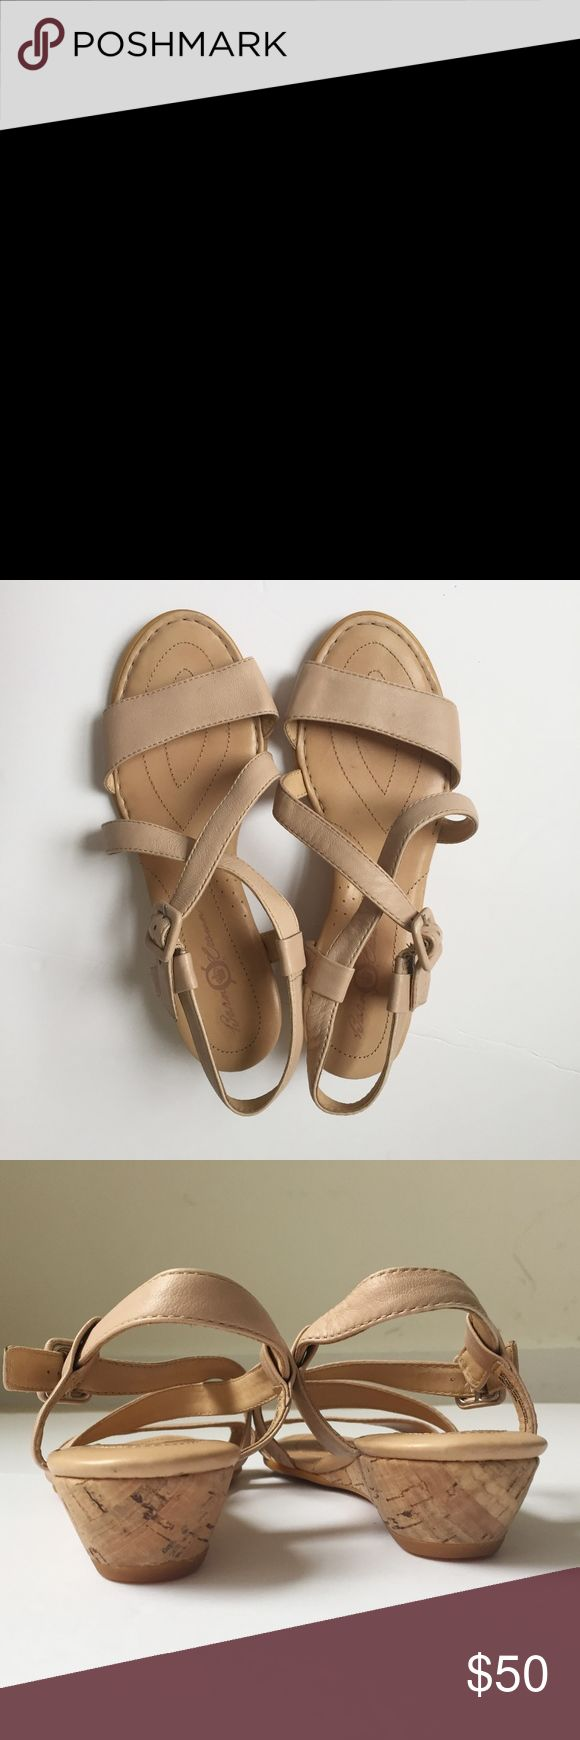 "NUDE STRAPPY born crown leather sandals shoe wedge CROWN BY BORN strappy sandals  minimalist. slimming. comfort, city walking. silent soles, cork heels with vintage appeal. $120  condition: excellent, minimal wear, see photos. no box. color: nude  material: butter soft leather size: US 7, 38  insoles length: 9.75"" arch width: 3.5"" heel height: 1.5"" Born Shoes Sandals"